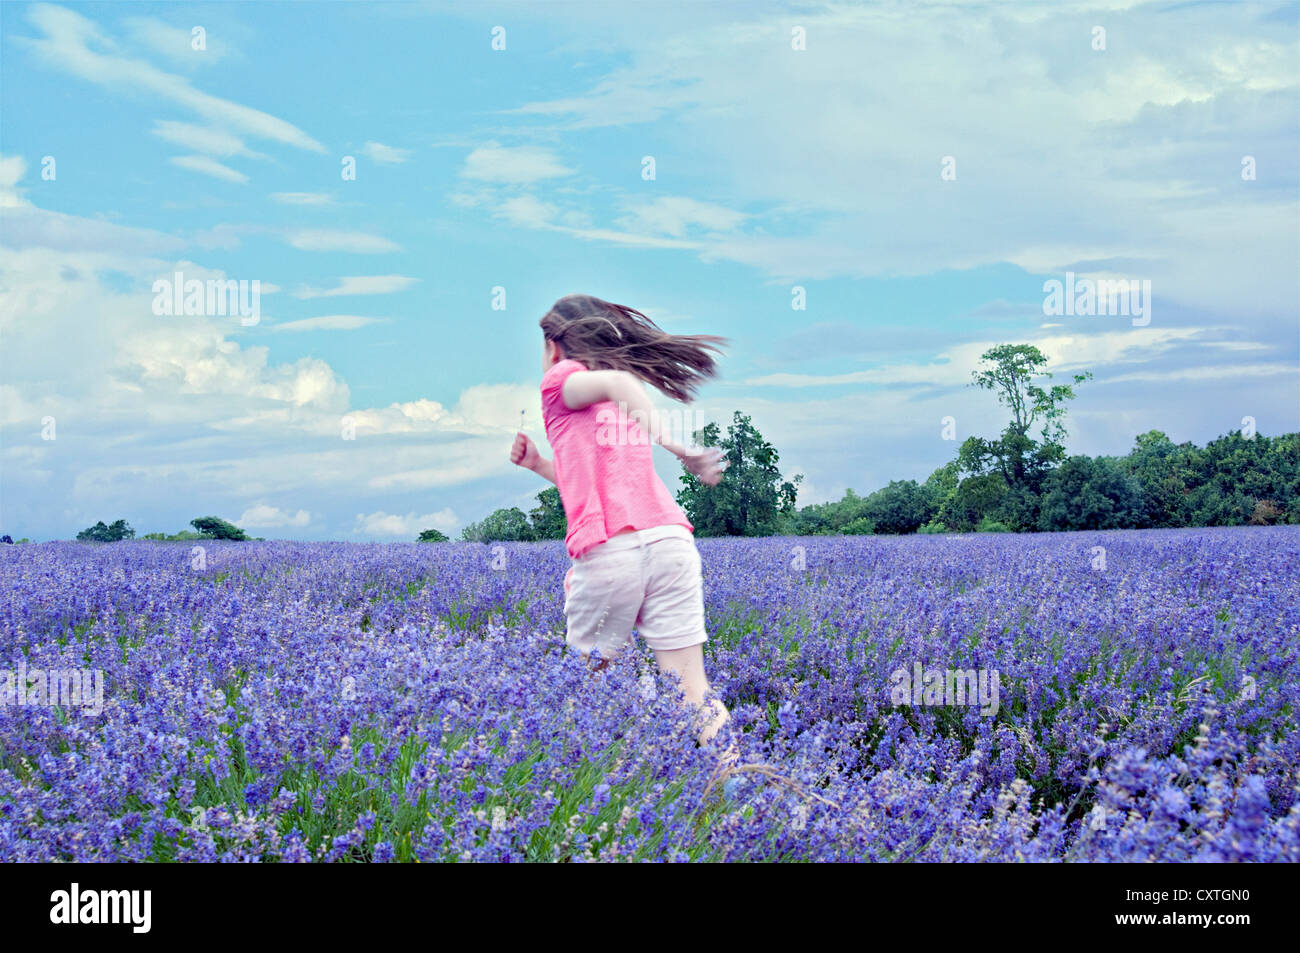 Girl running in field of flowers Stock Photo, Royalty Free ...